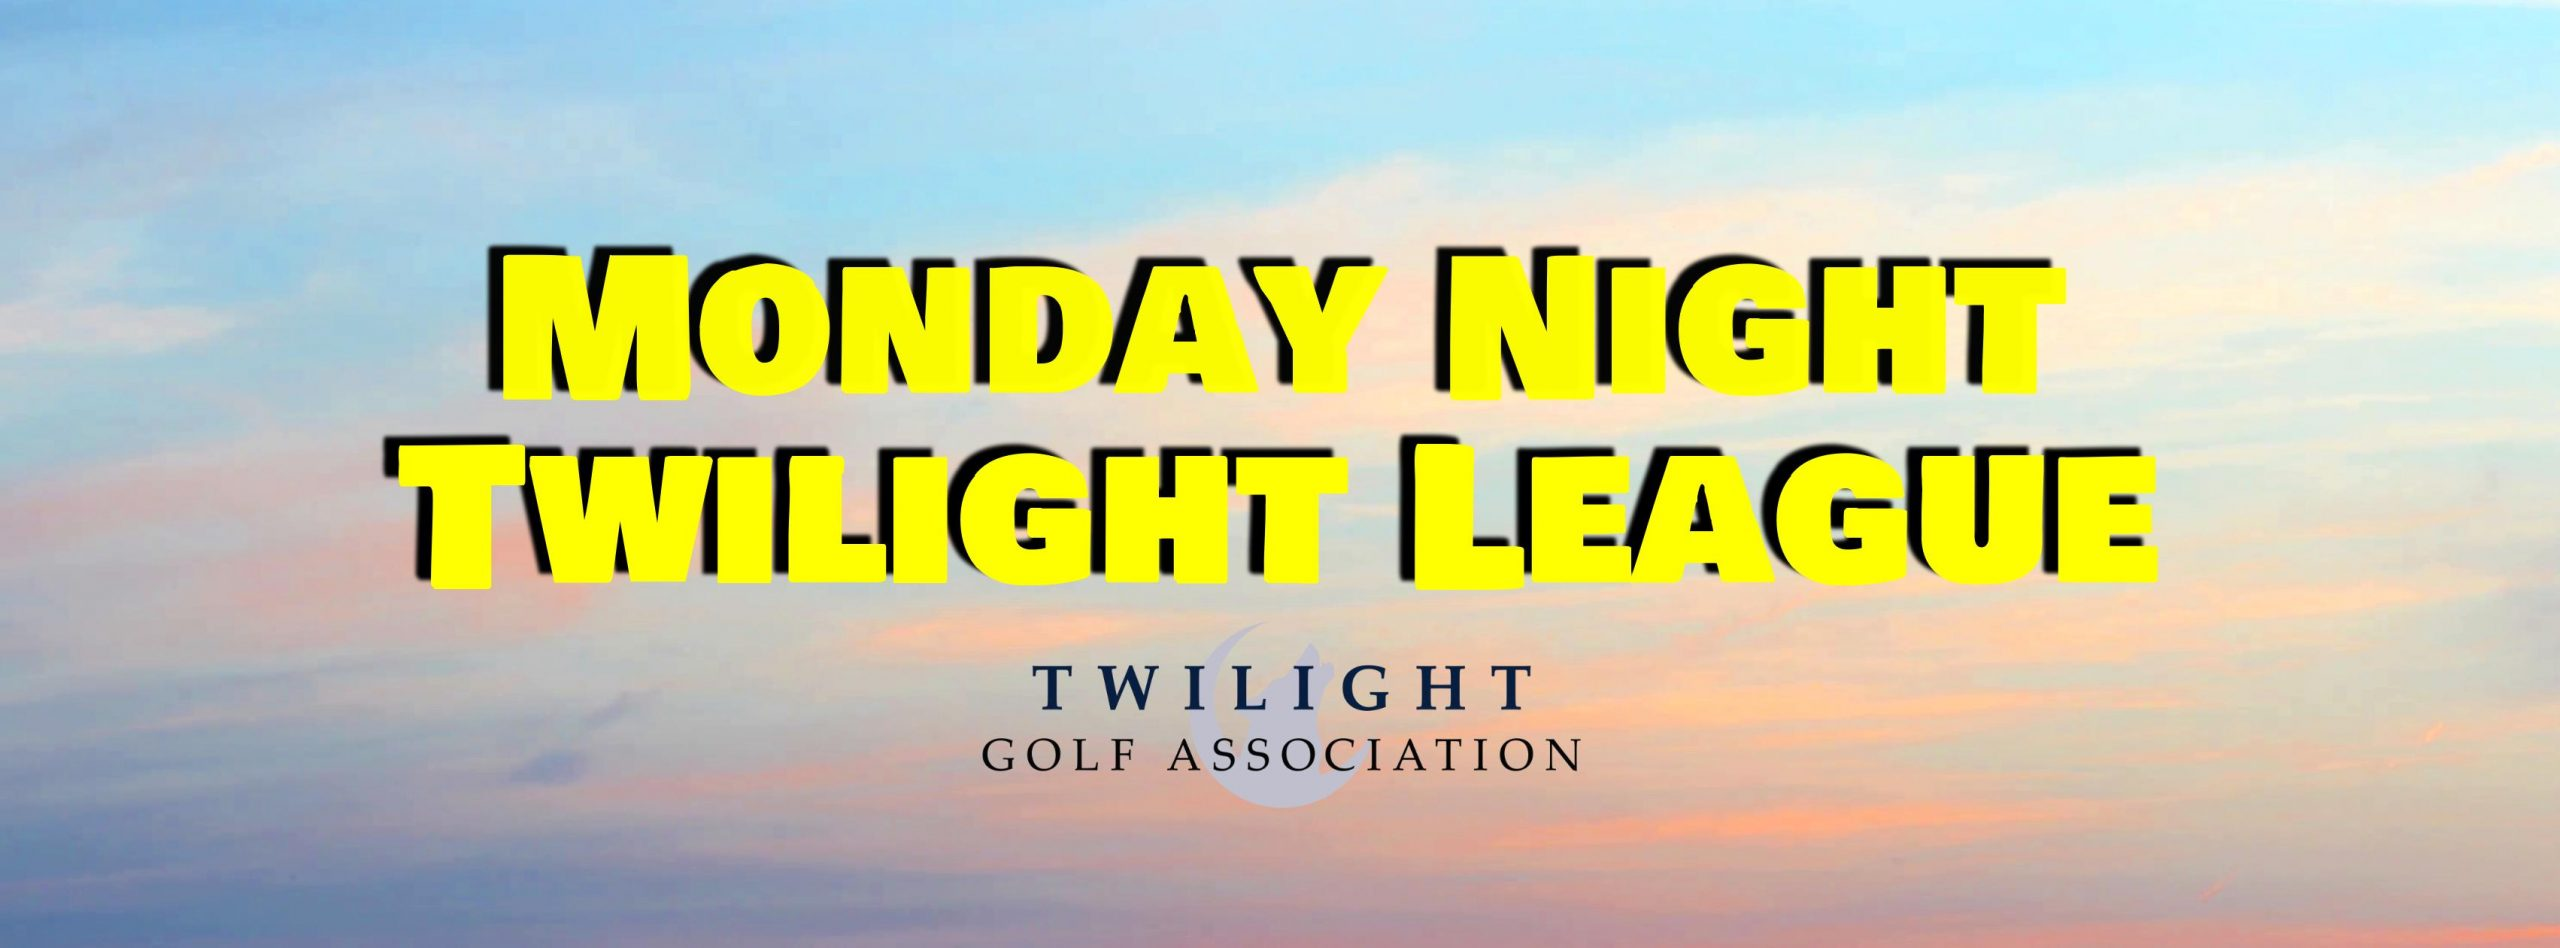 Monday Twilight League at Lady Bird Golf Course